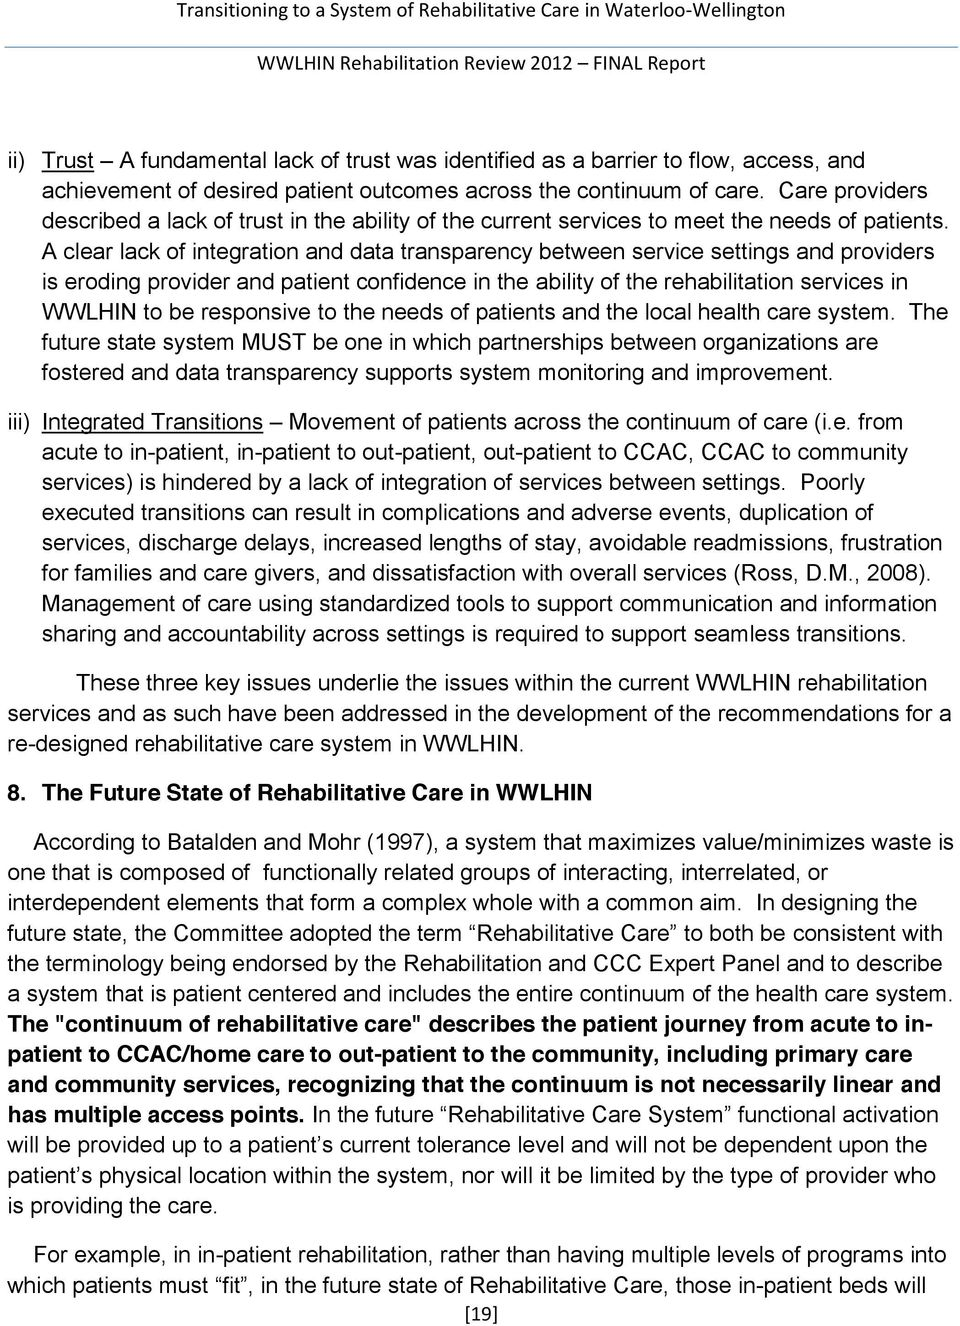 A clear lack of integration and data transparency between service settings and providers is eroding provider and patient confidence in the ability of the rehabilitation services in WWLHIN to be